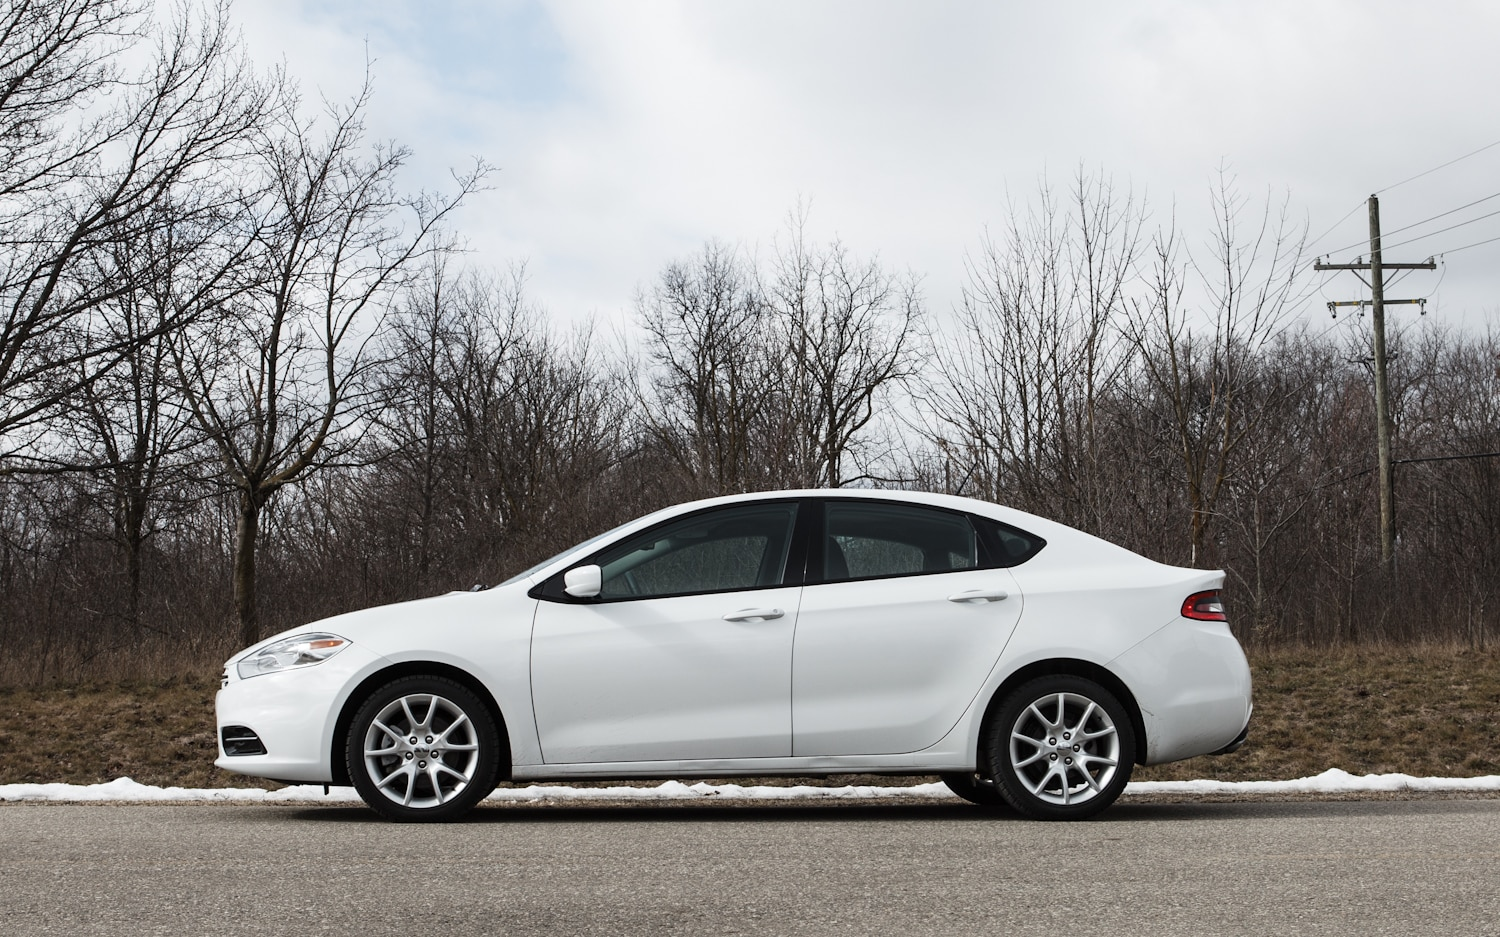 2013 Dodge Dart SXT Left Side View1